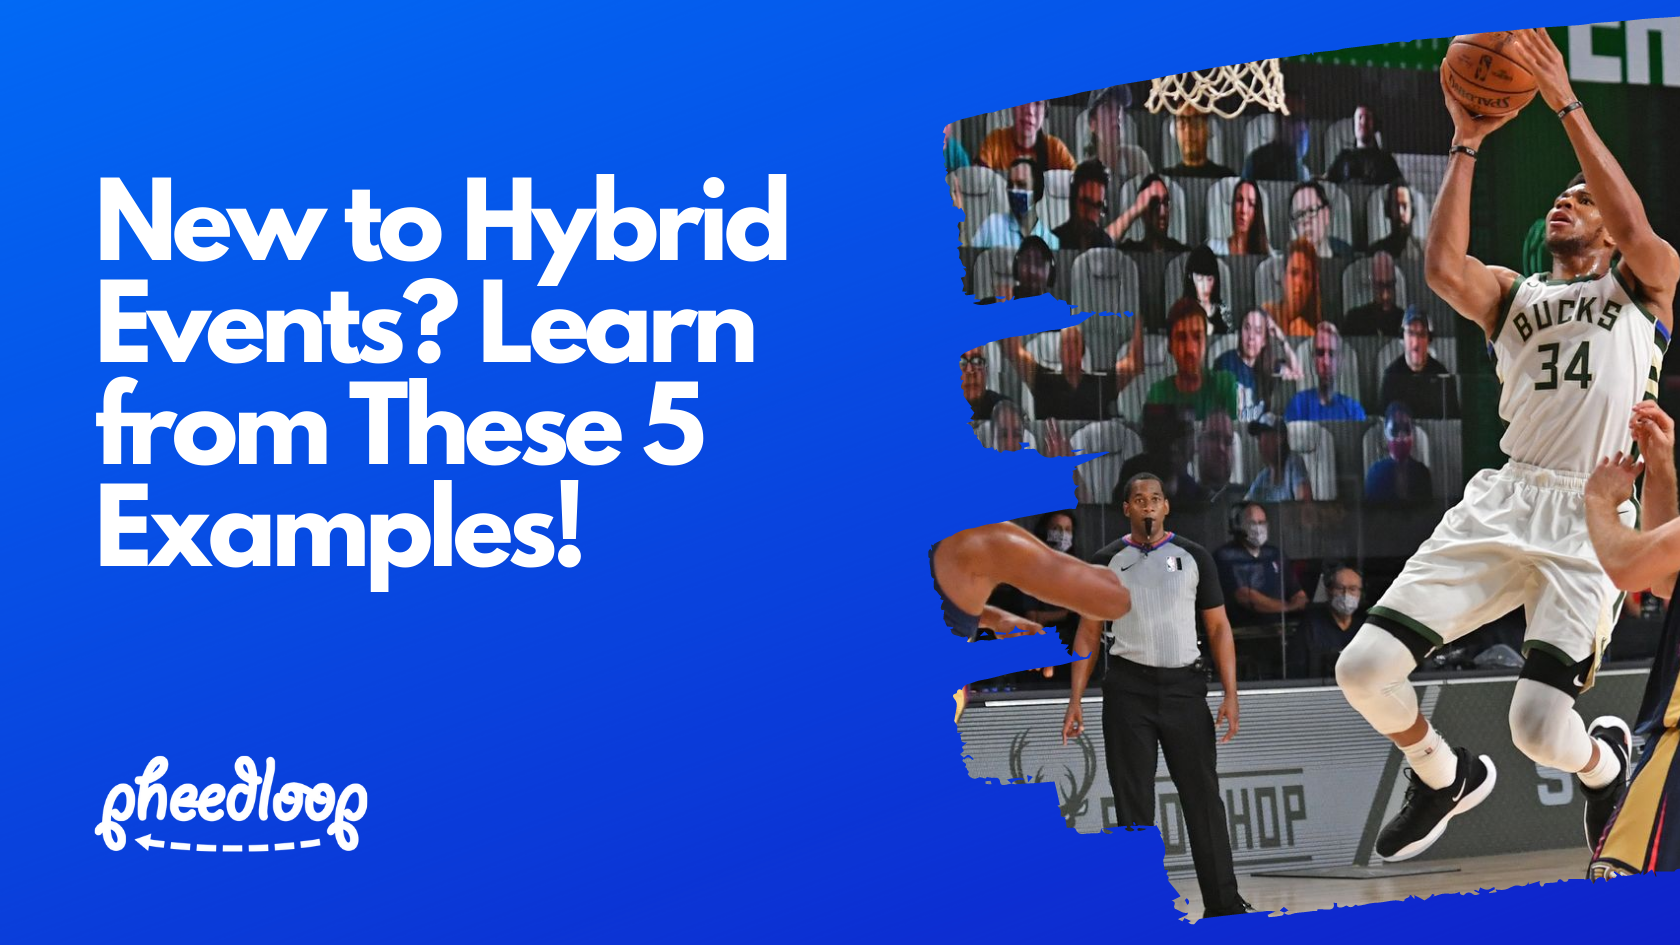 5 Hybrid Event Examples and Ideas to Inspire Event Planners